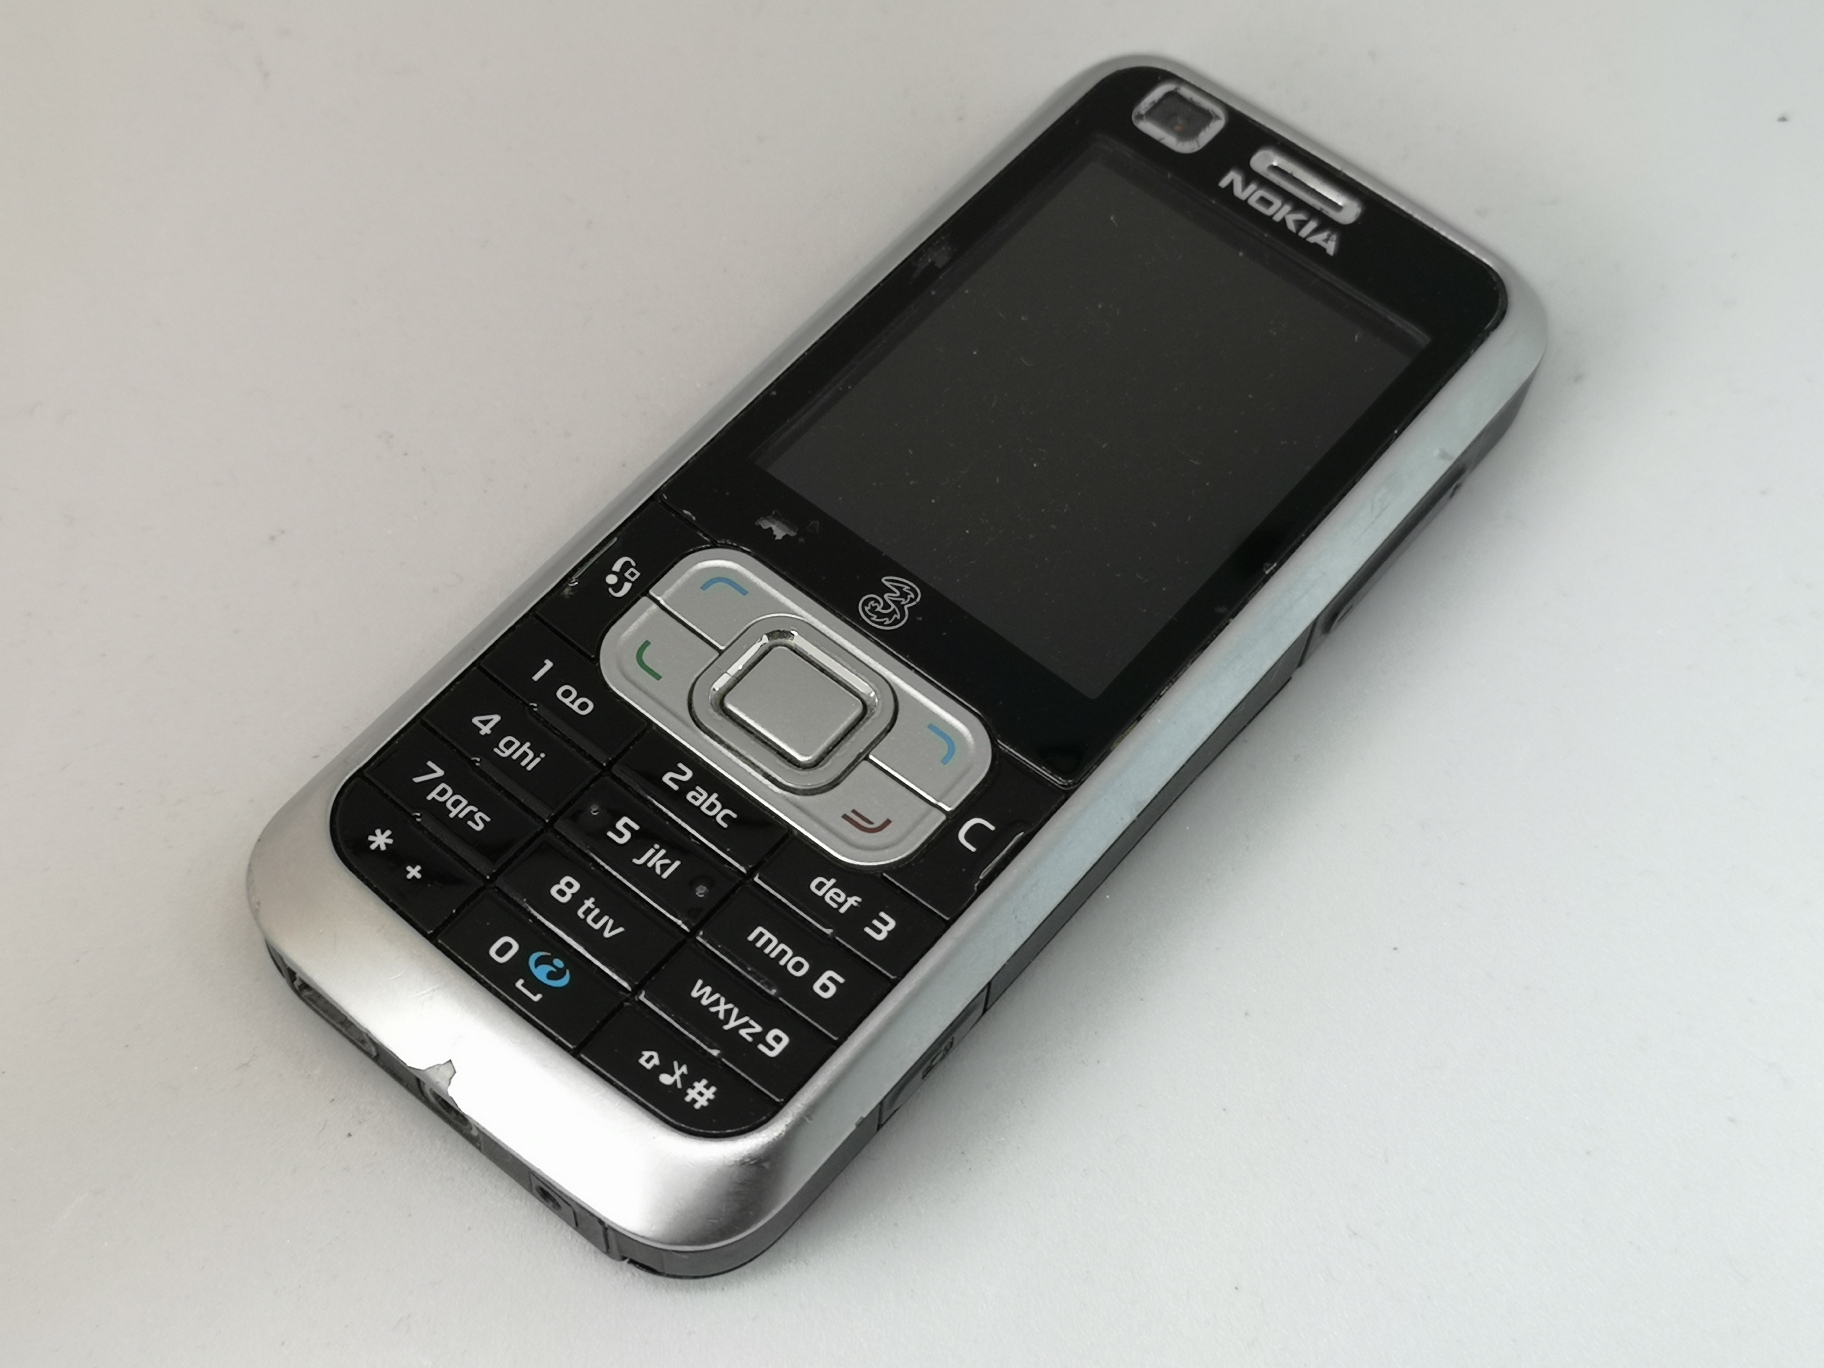 Nokia 6120 Review - Full Featured Smartphone